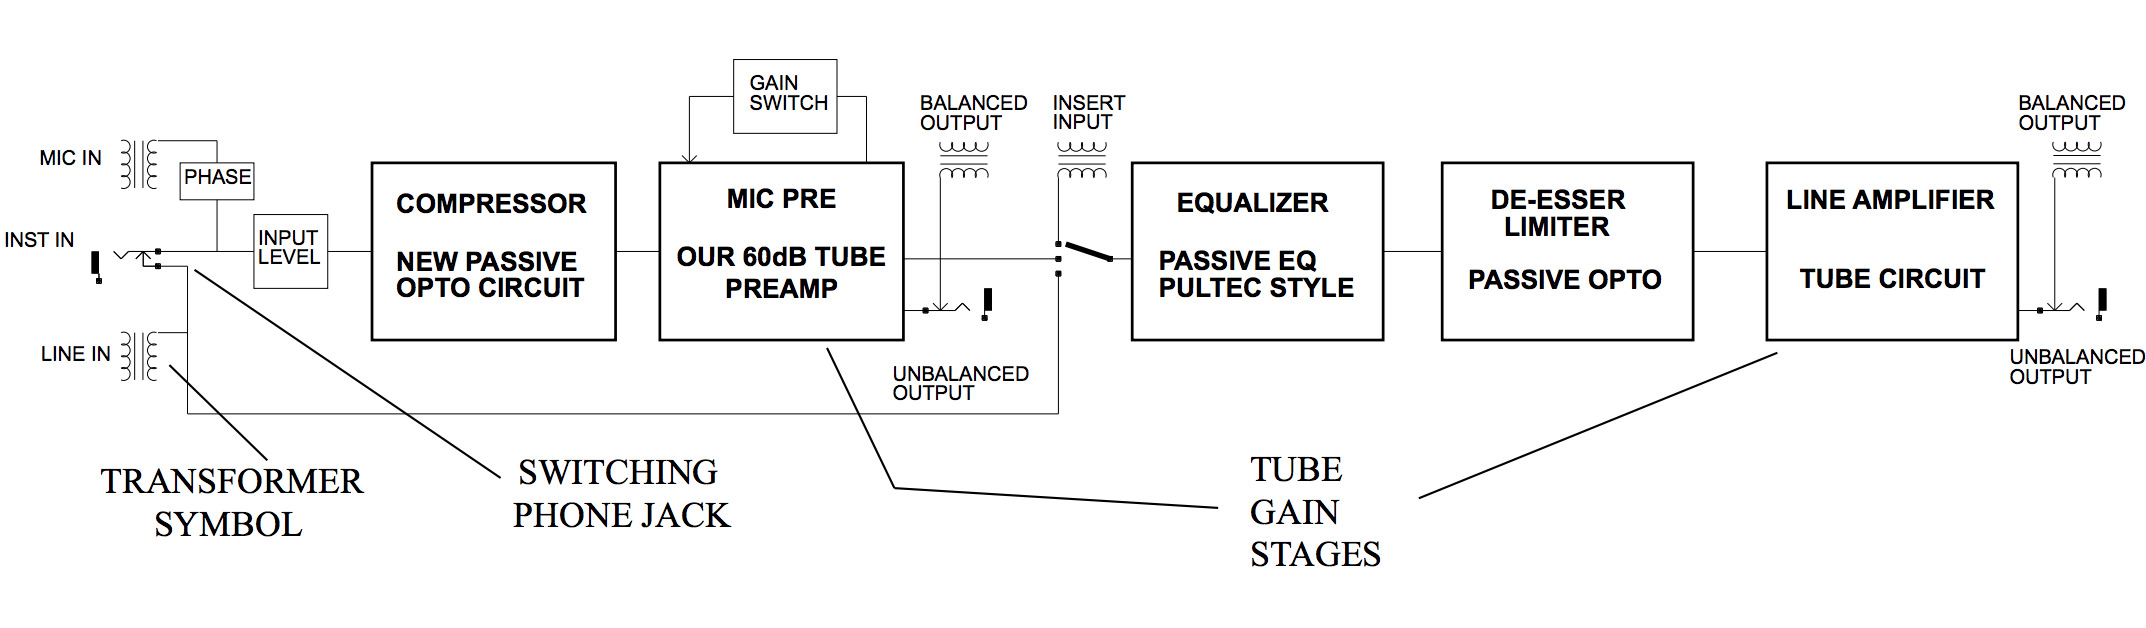 hight resolution of a block diagram illustrating the audio signal flow of the manley labs voxbox channel strip